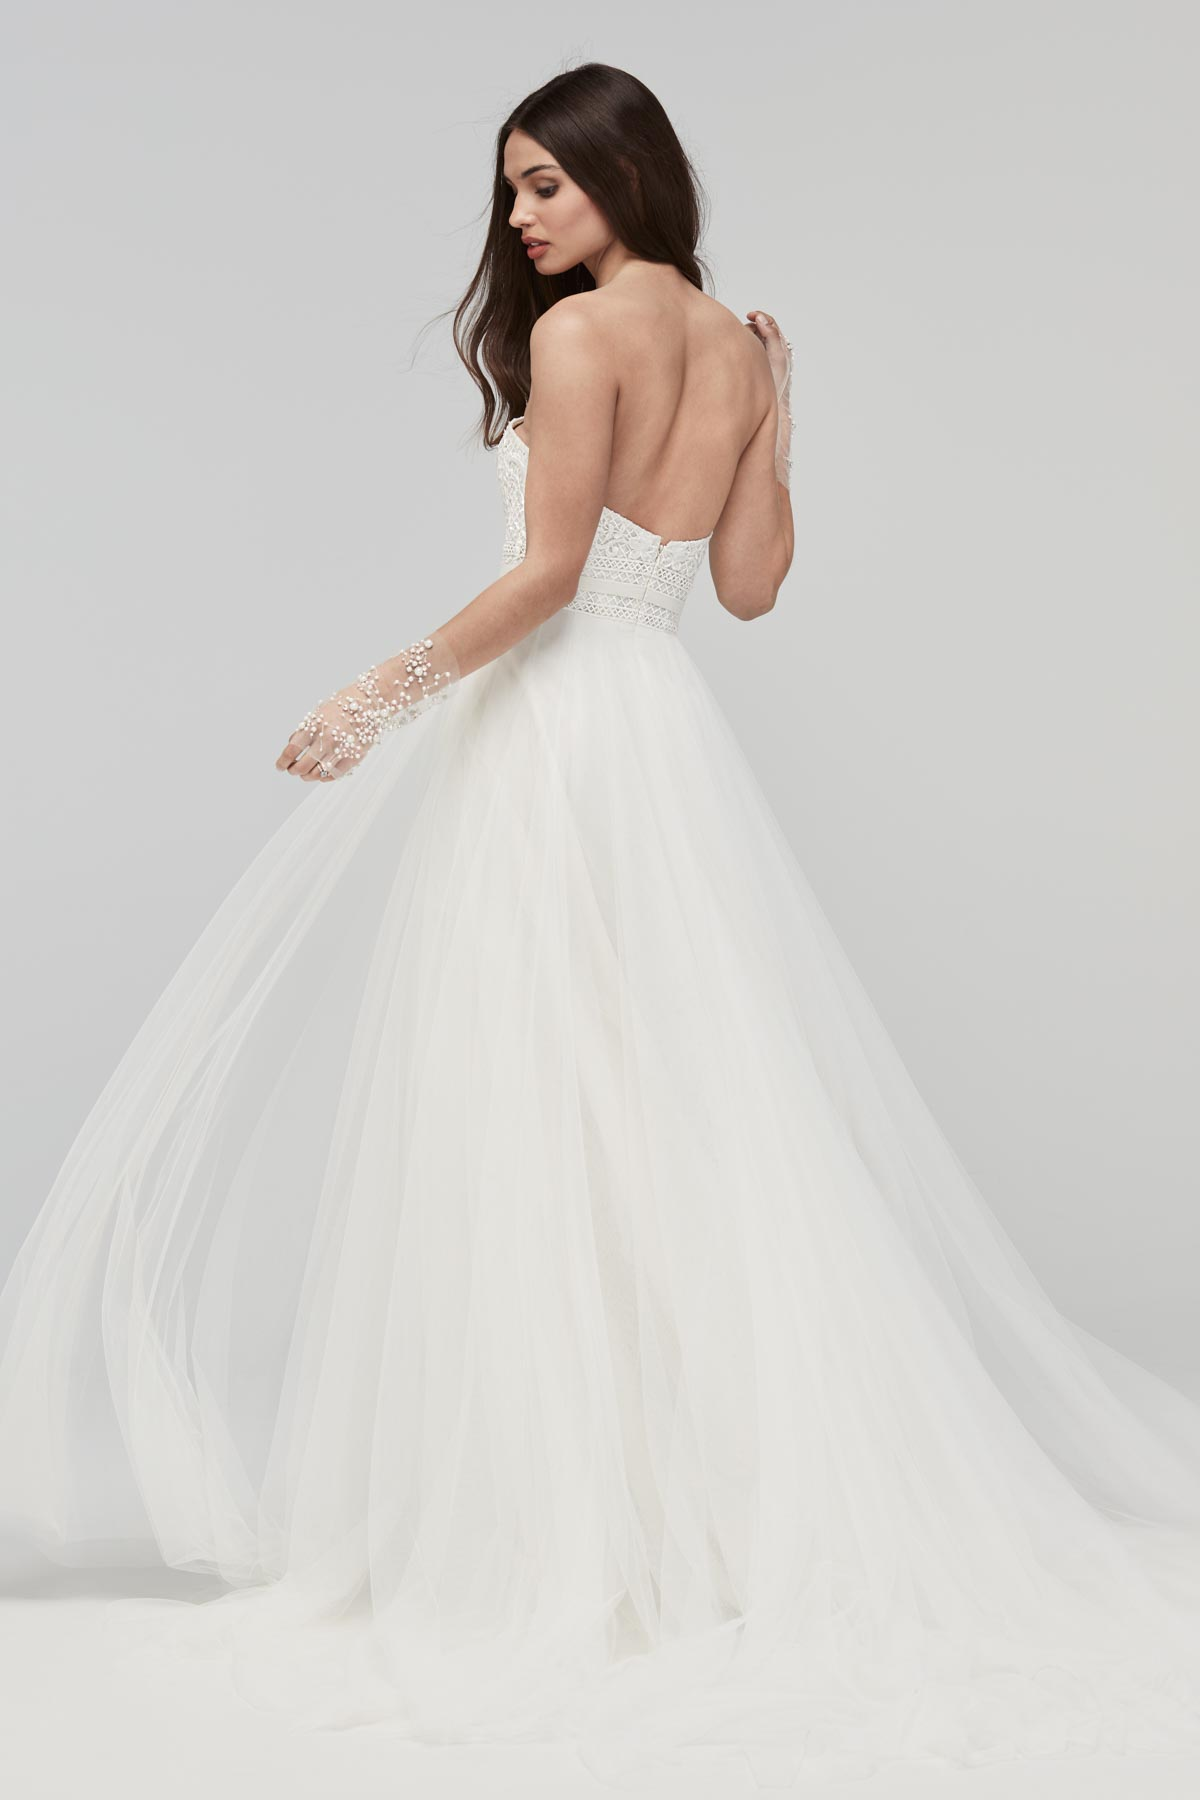 Dress Me Up Take Me Out: Siobhan Wedding Dress